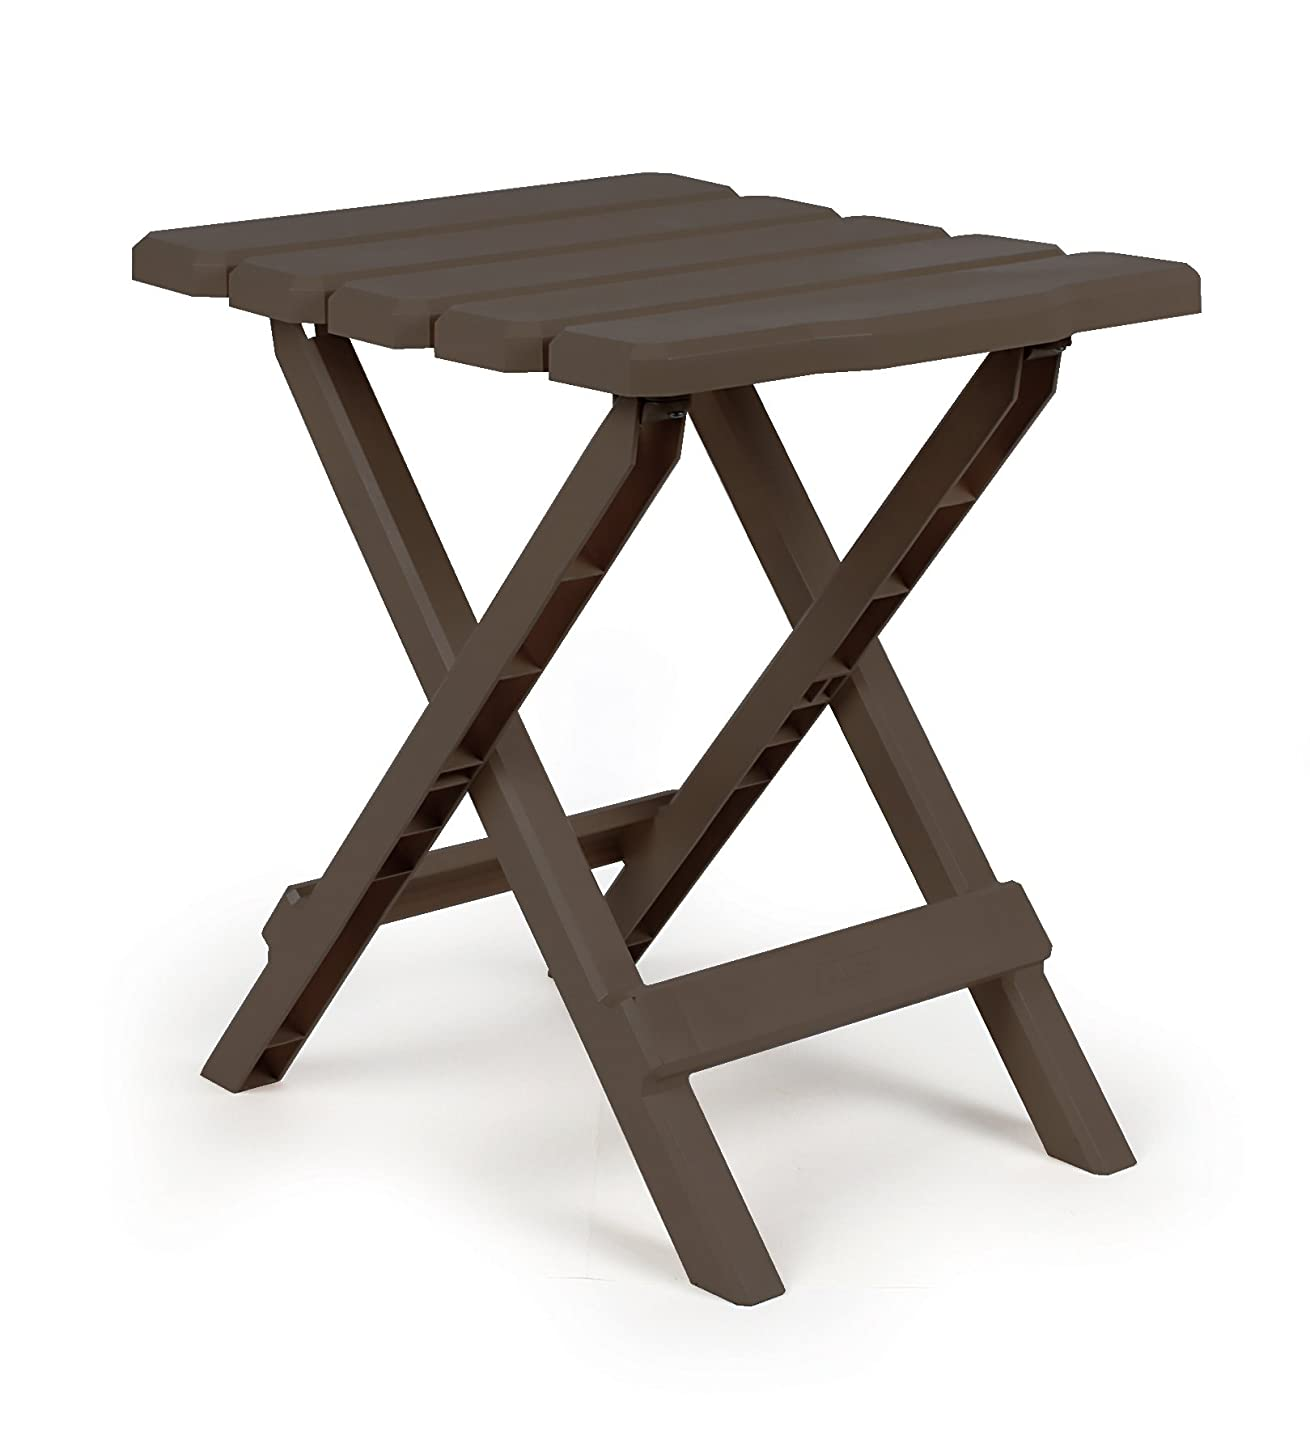 Camco Adirondack Portable Outdoor Folding Side Table, Perfect For The Beach, Camping, Picnics, Cookouts and More, Weatherproof and Rust Resistant - Mocha (51882)